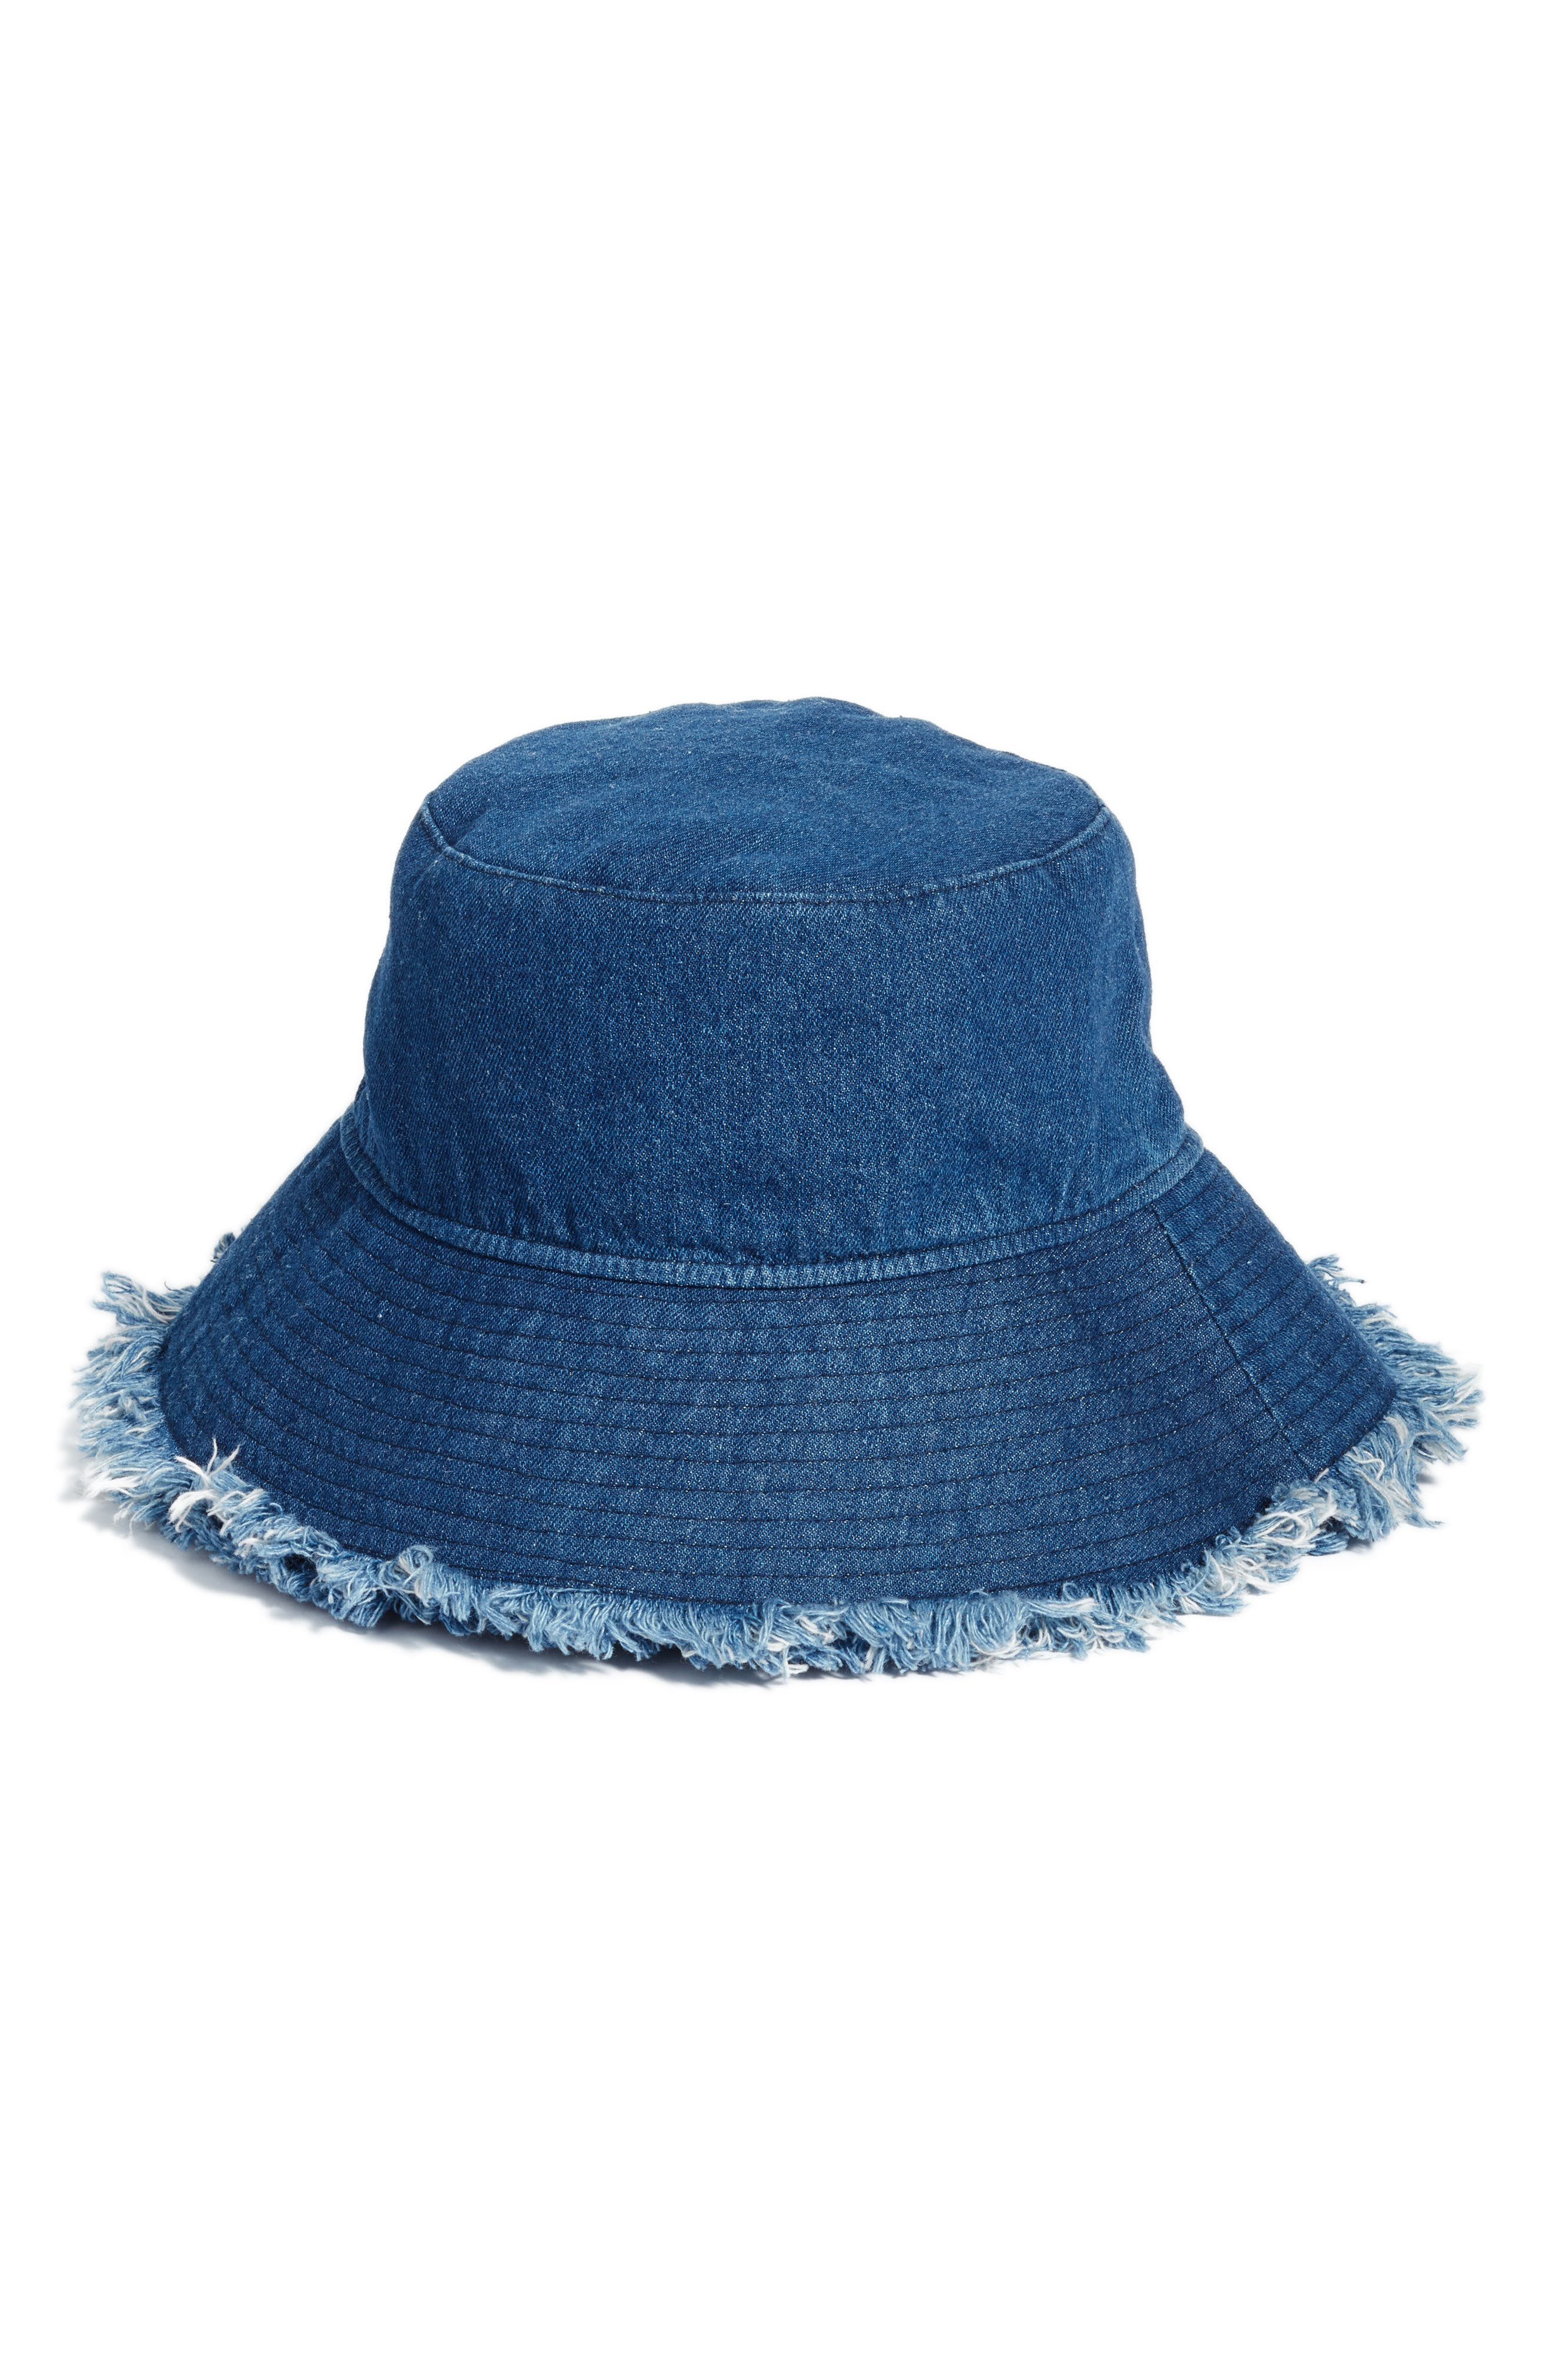 Trasure & Bond Denim Bucket Hat